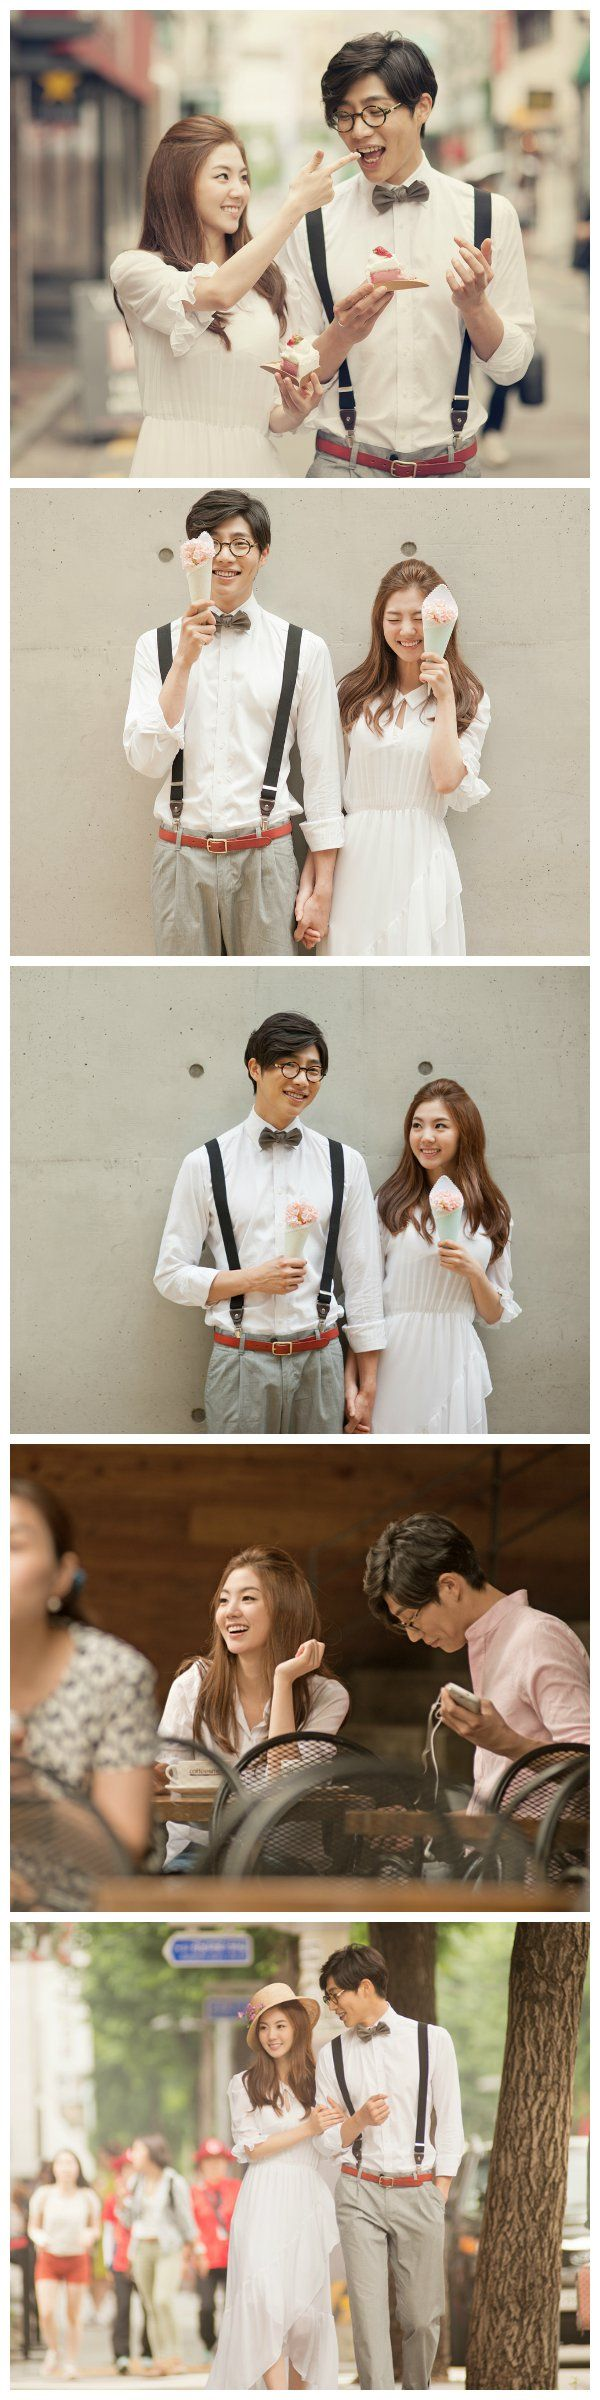 Cafe dating in Seoul. Casual Korean prewedding shoot | May Studio on…